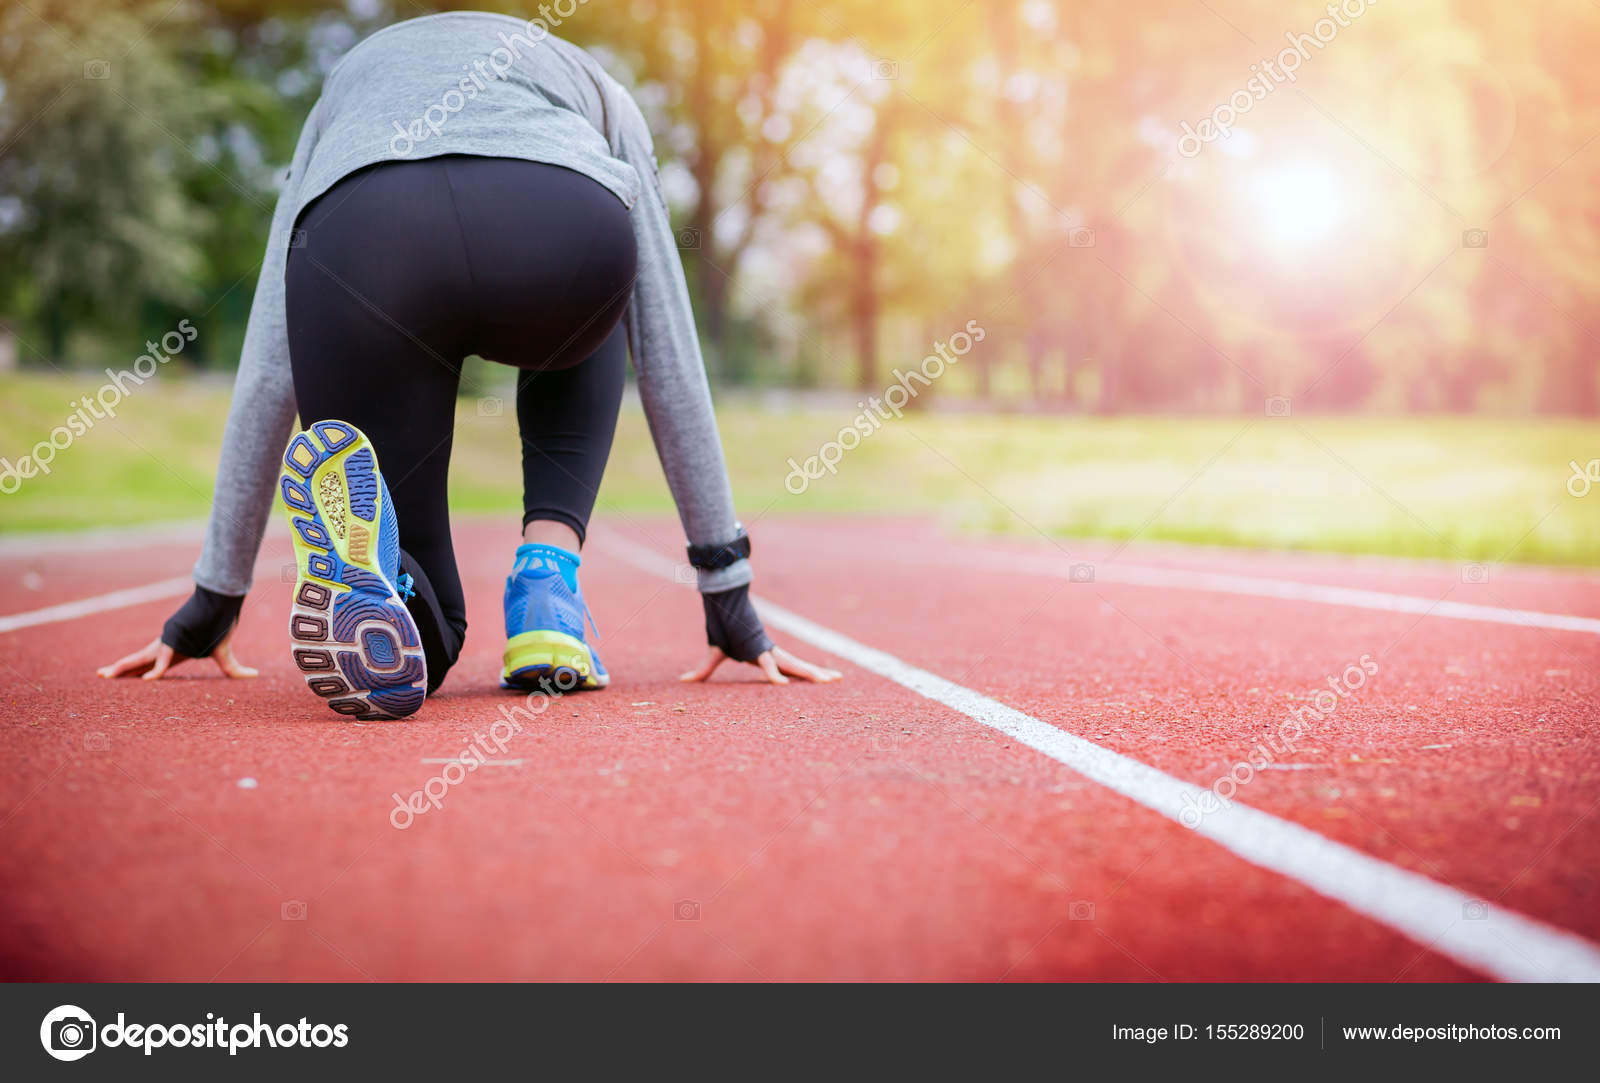 Athletic Woman On Running Track Getting Ready To Start Run Back View Stock Photo